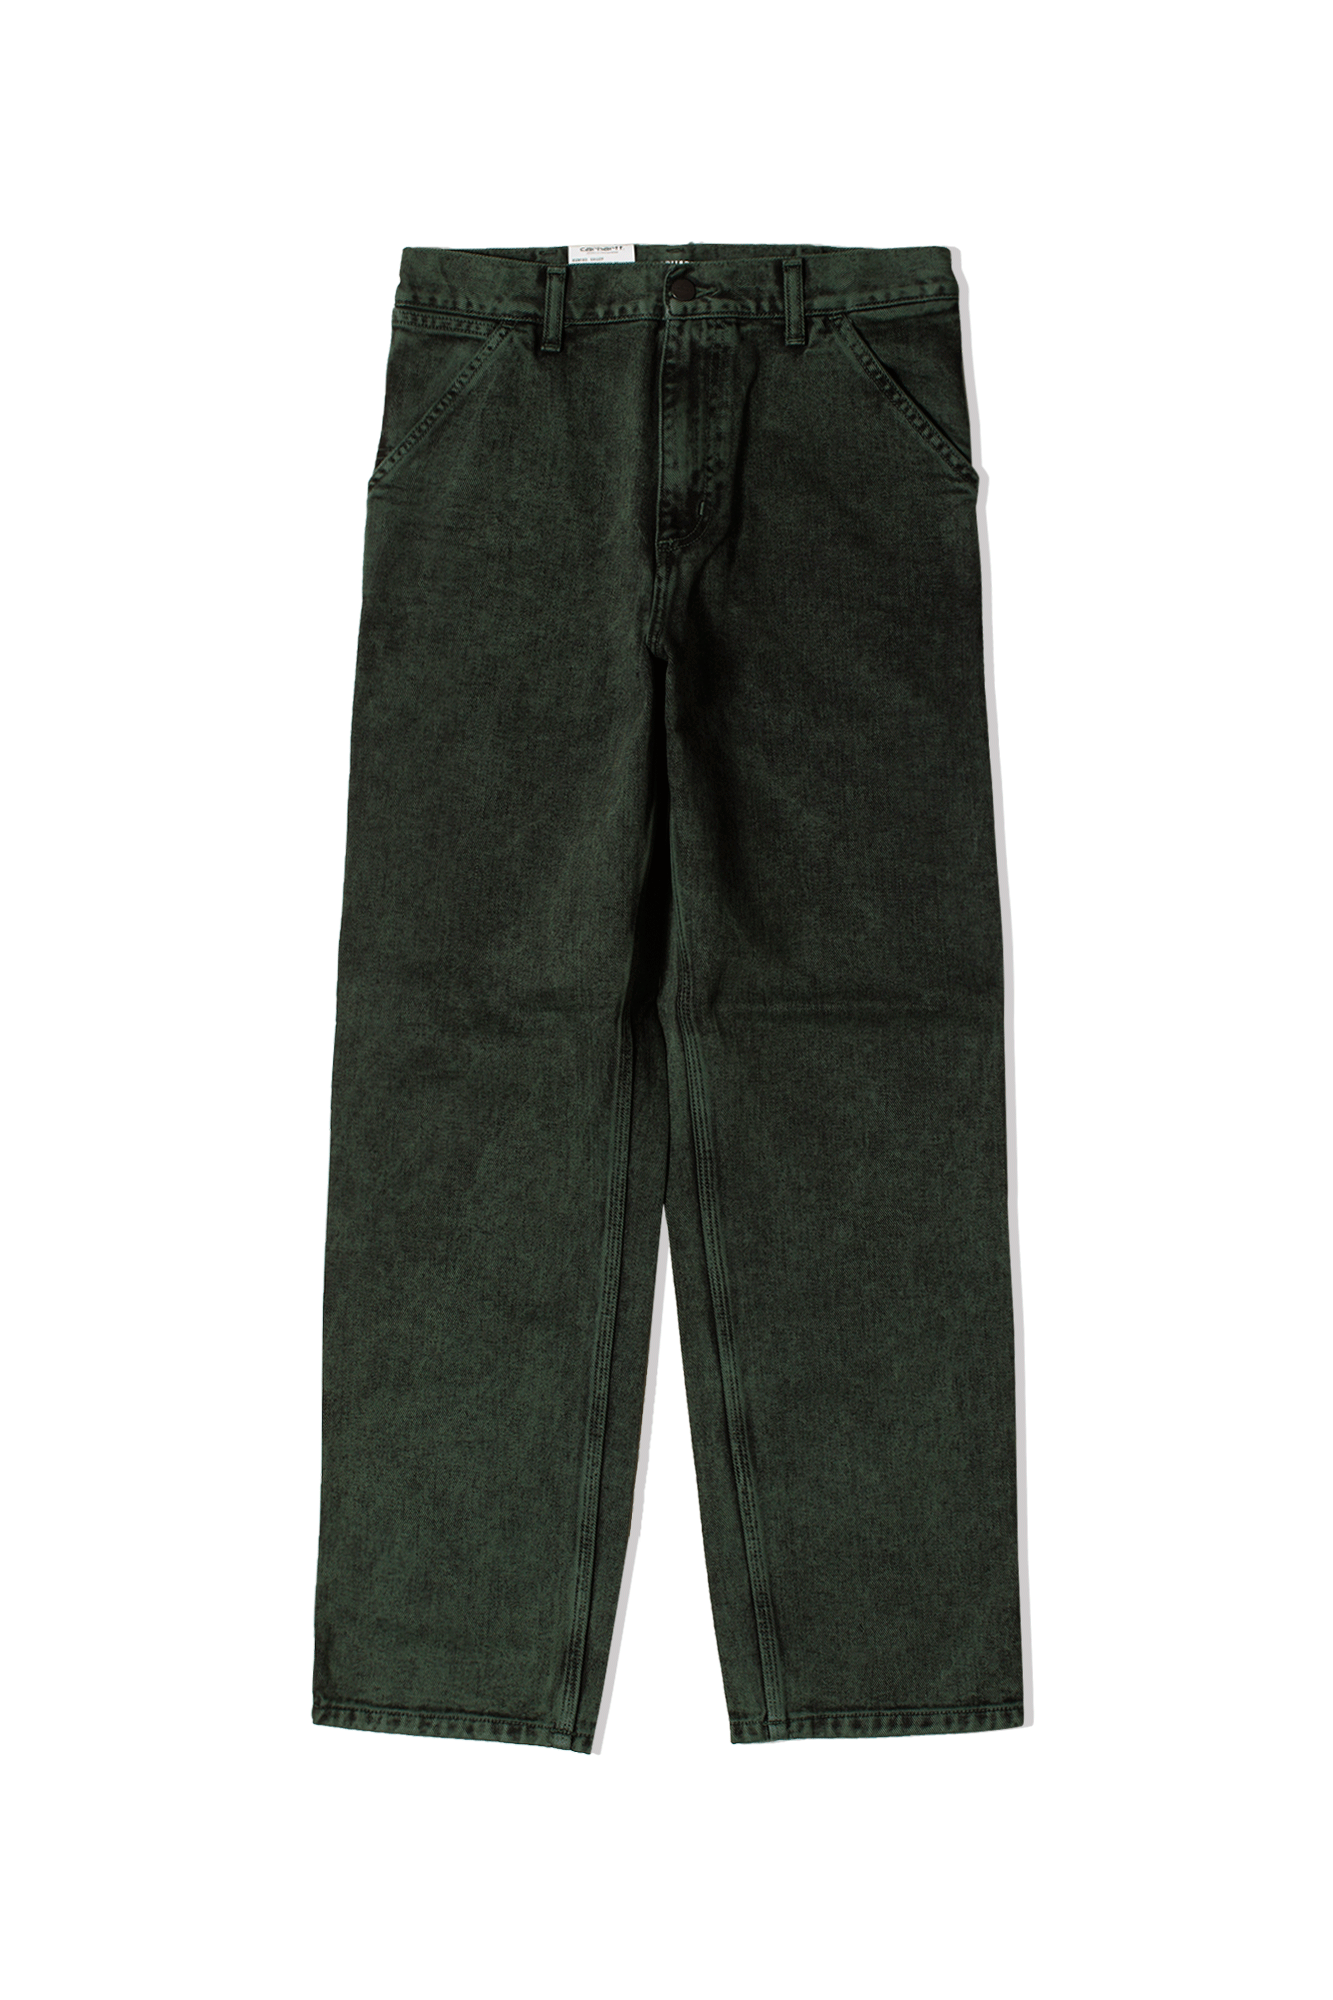 Carhartt Trousers Single Knee Pant Green I029153.32#000#0AU.ZF#29/32 - One Block Down